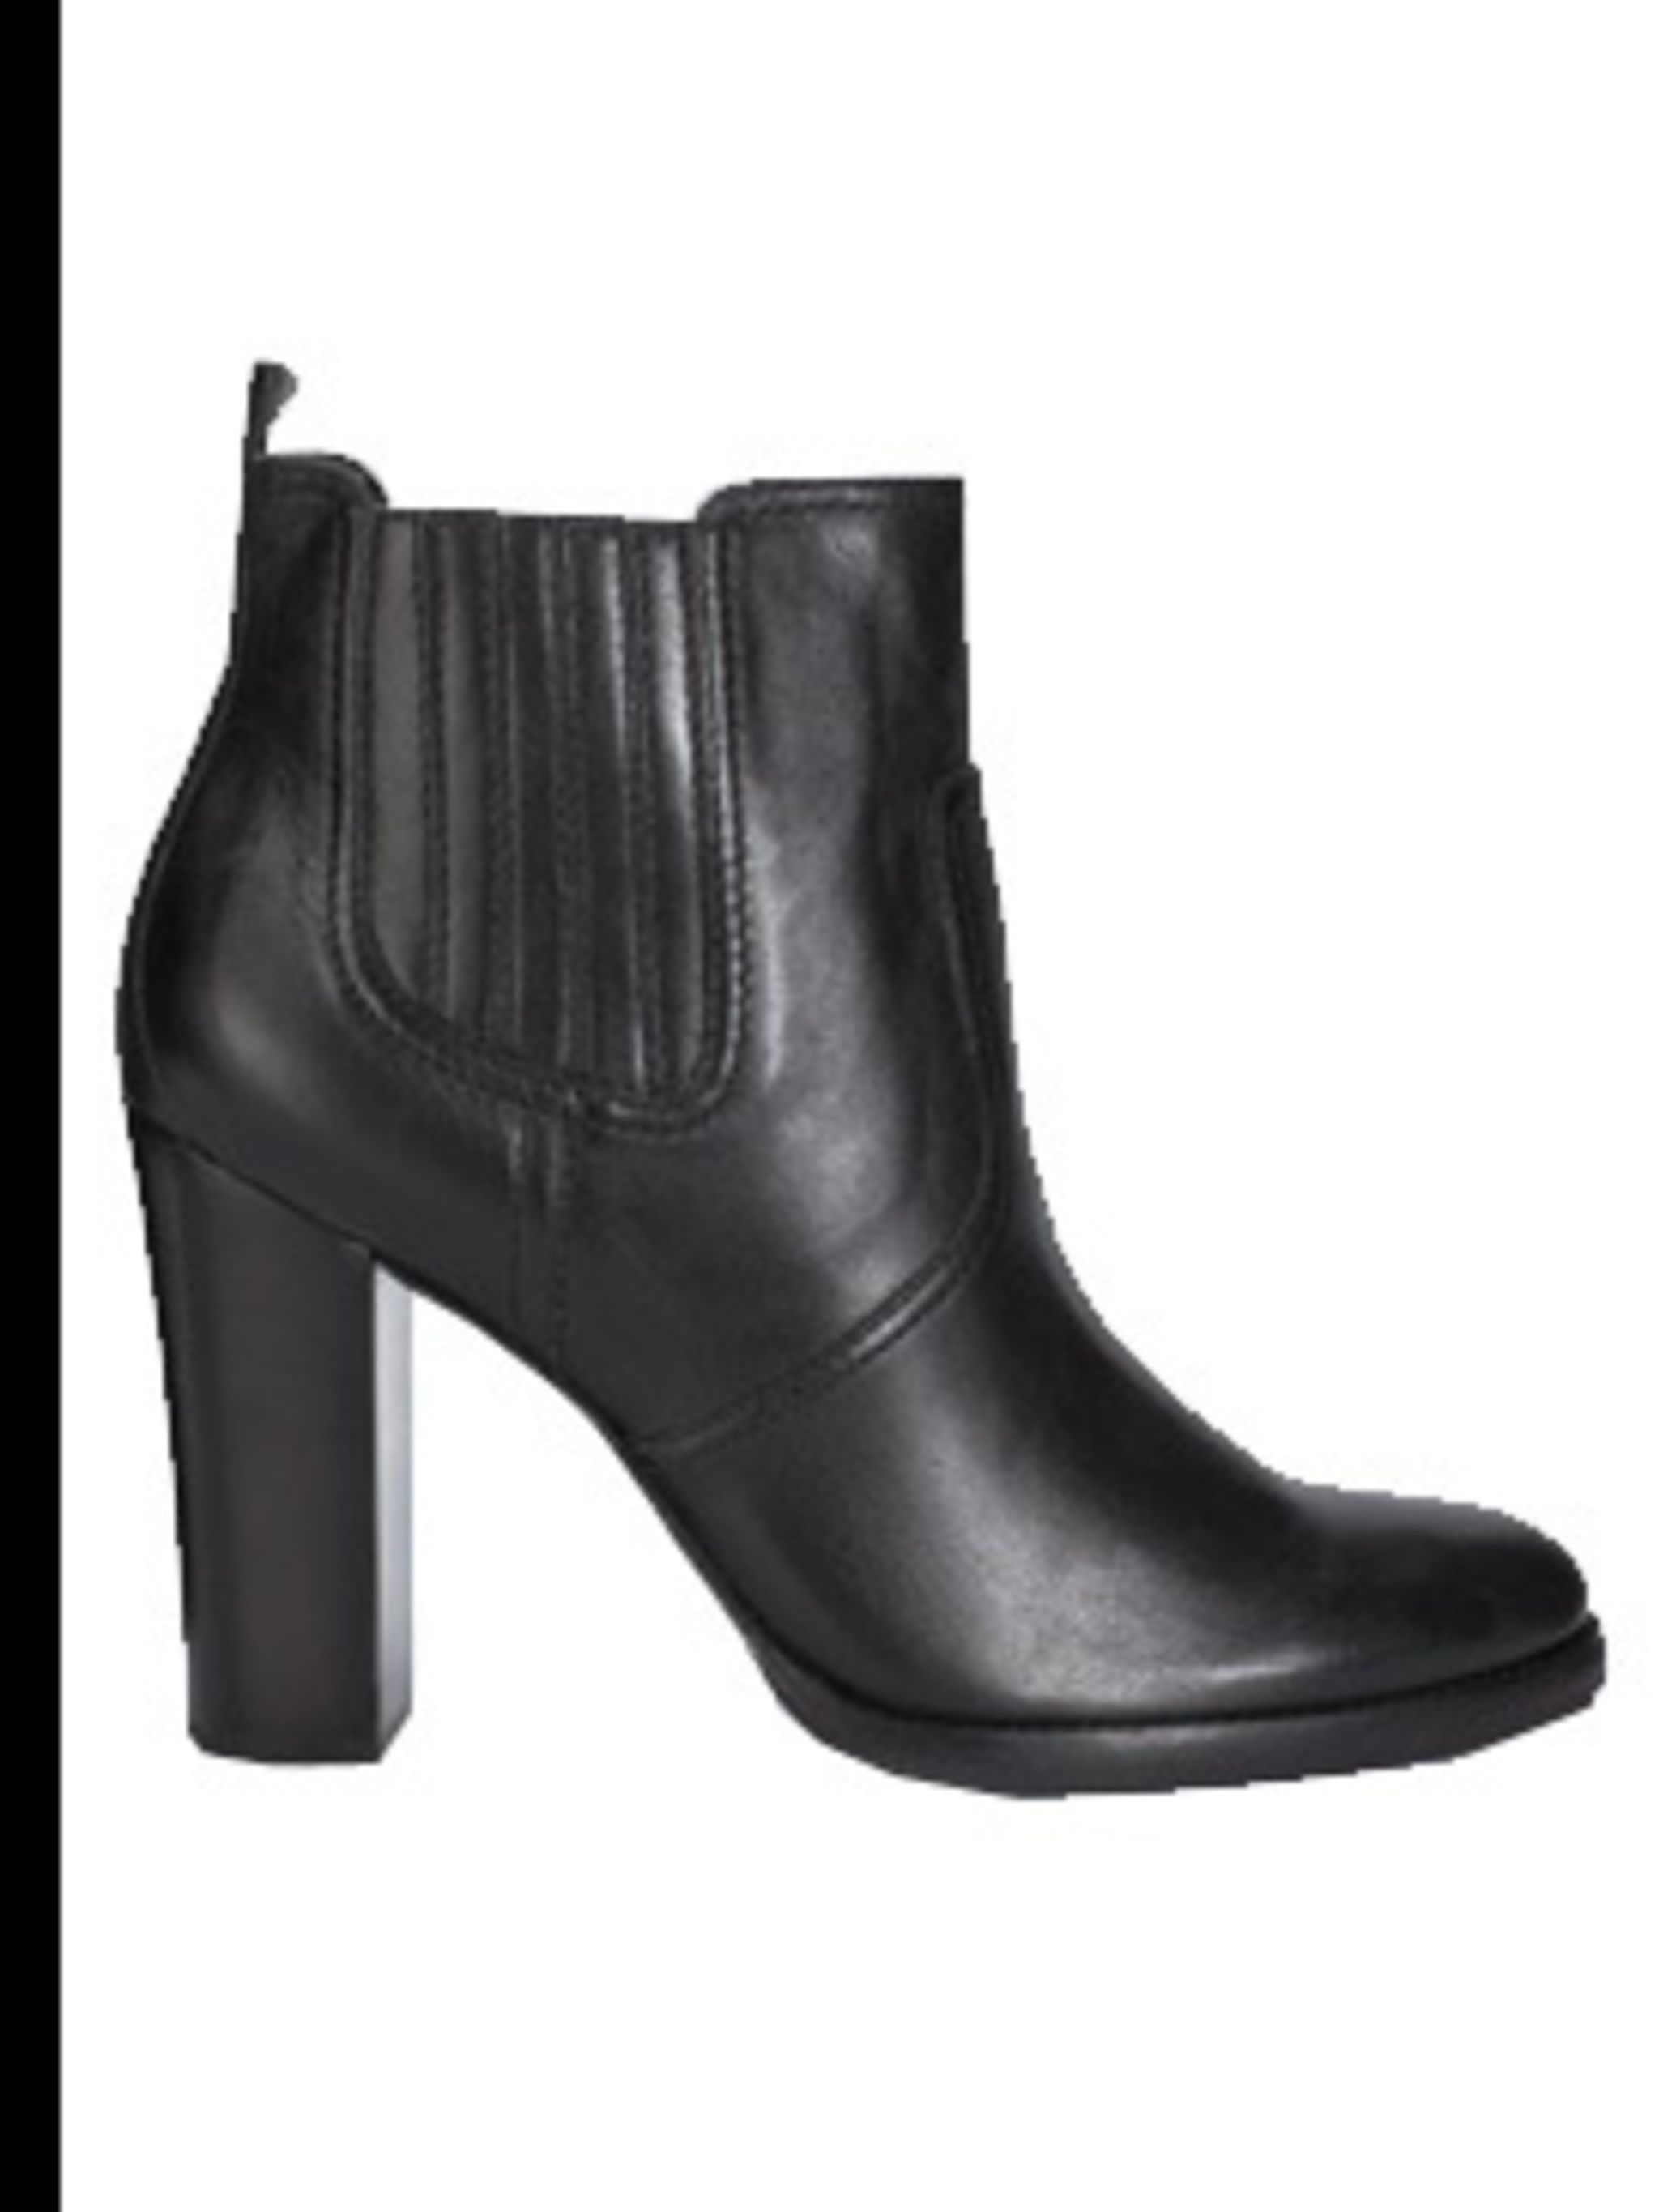 <p>Boots, £65.00 by Pierre Hardy for Gap. For stockists call 0800 427789</p>